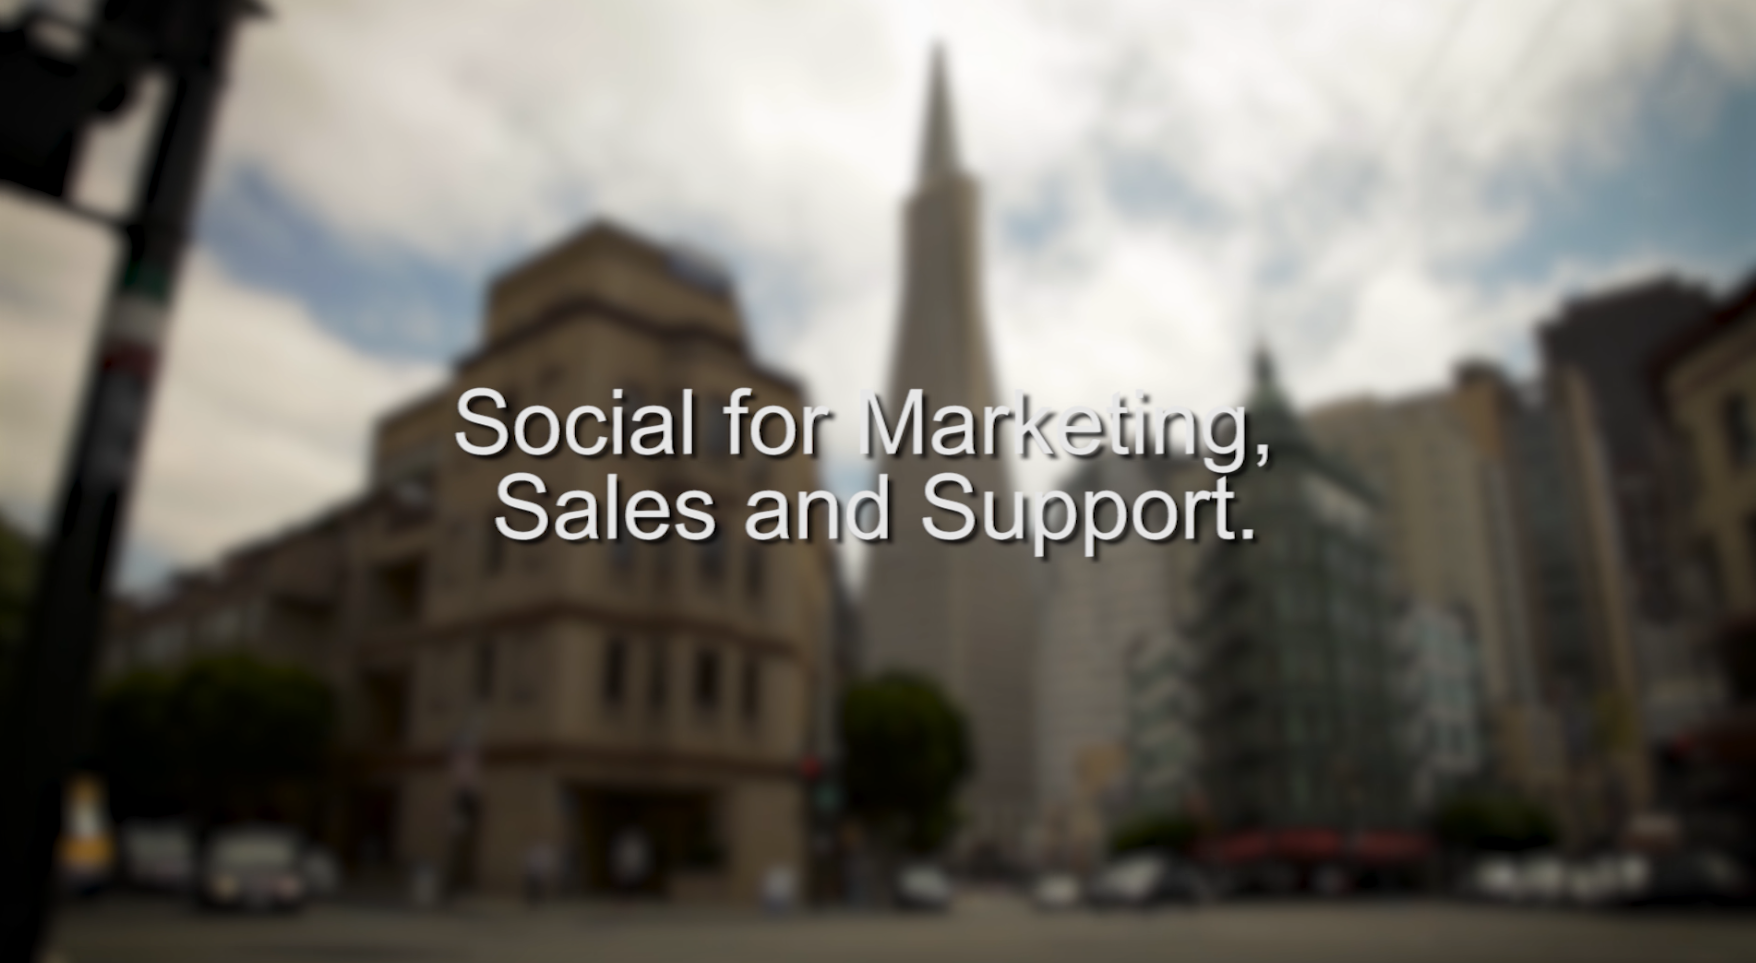 How do customers interact with organizations in social channels?